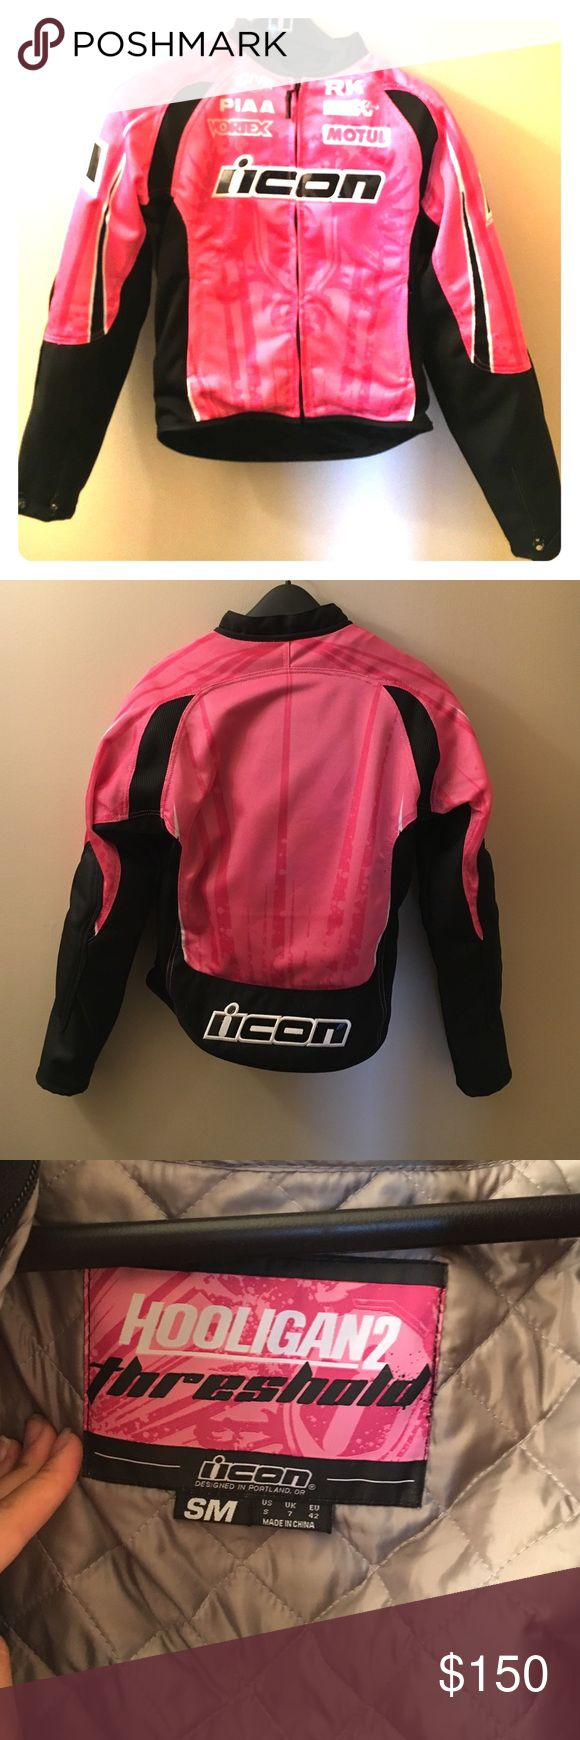 Icon Hooligan 2 motorcycle jacket Textile icon jacket worn only 3-4 times! Great condition! ICON Jackets & Coats